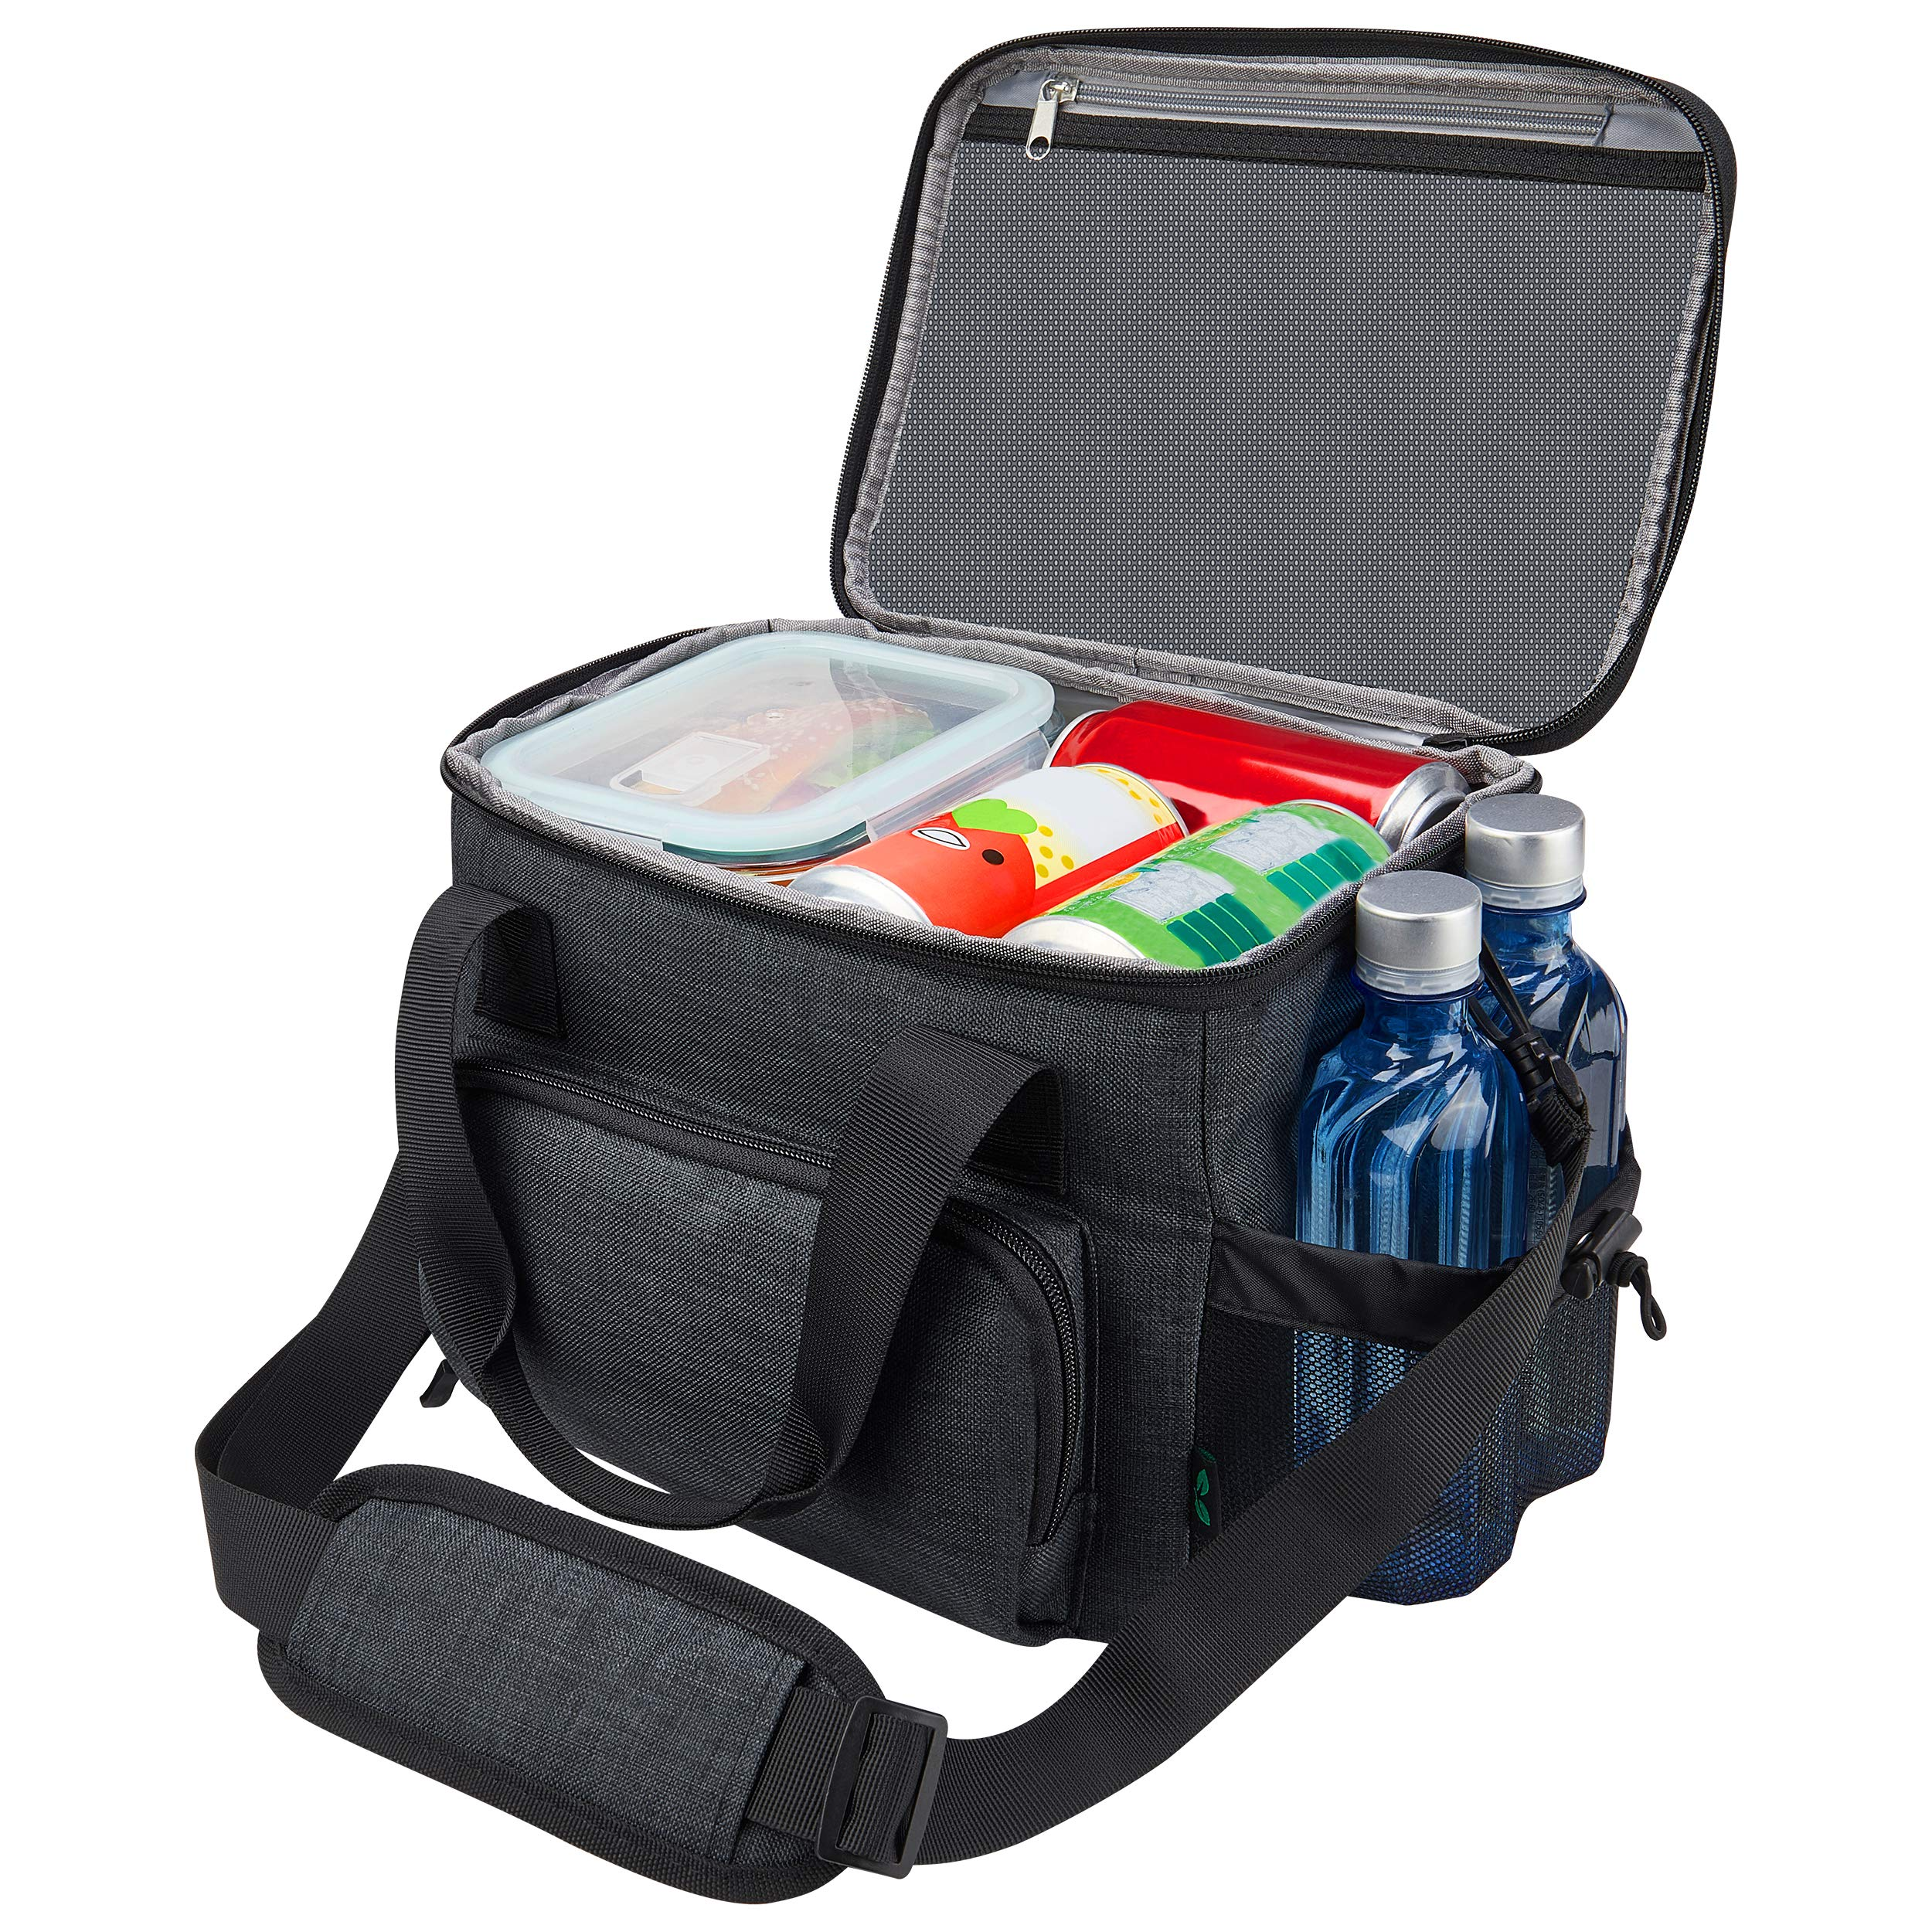 Lunch Box for Men, 18 cans Large Leak-proof Insulated Big Lunch Box, Lunchbox Adult Men with Shoulder Strap and Side Pocket for Work and Outdoor